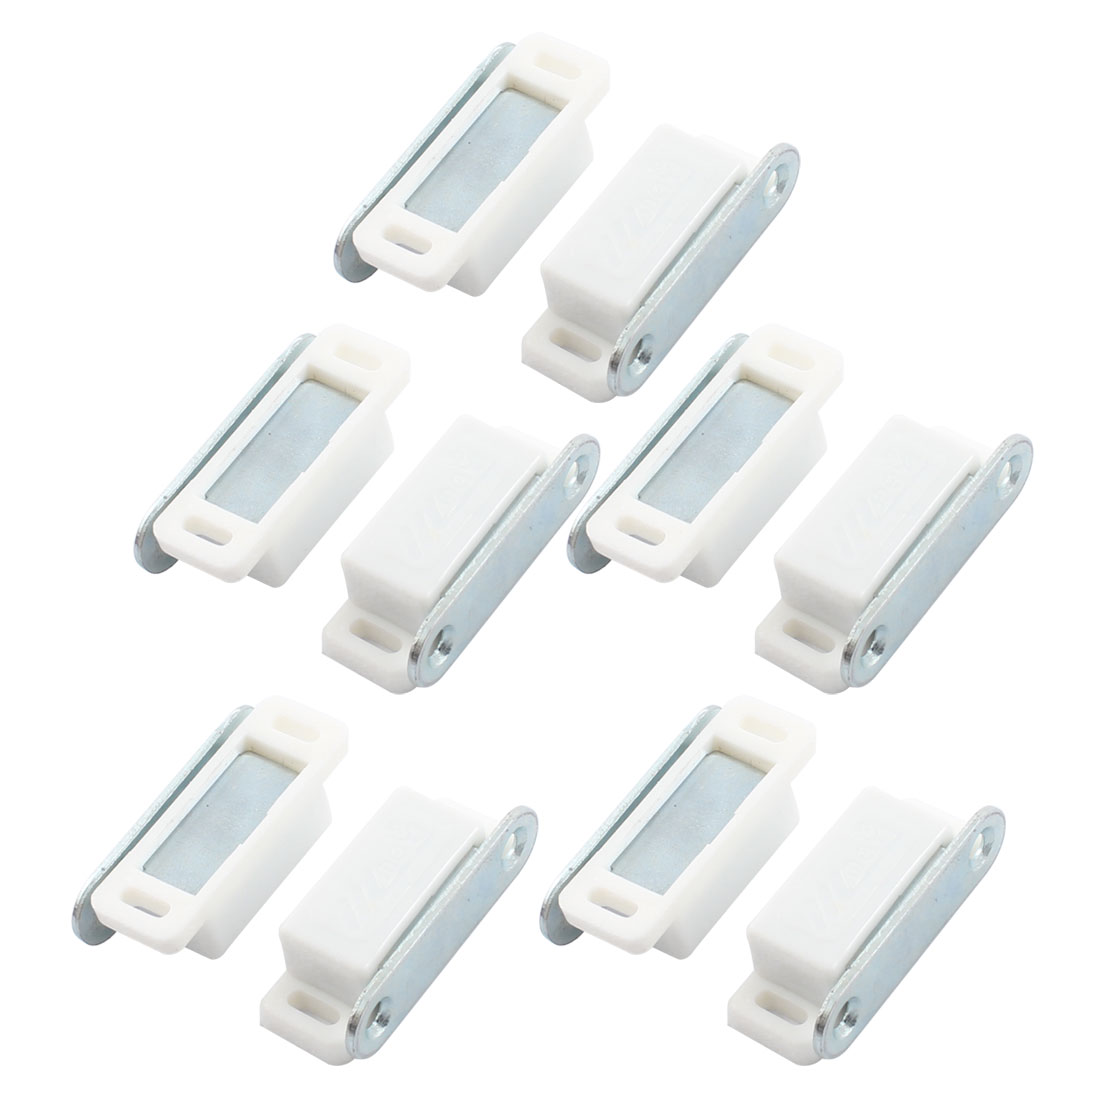 10Pcs Home Beige Plastic Cupboard Door Magnetic Catch Latch 46mm Length